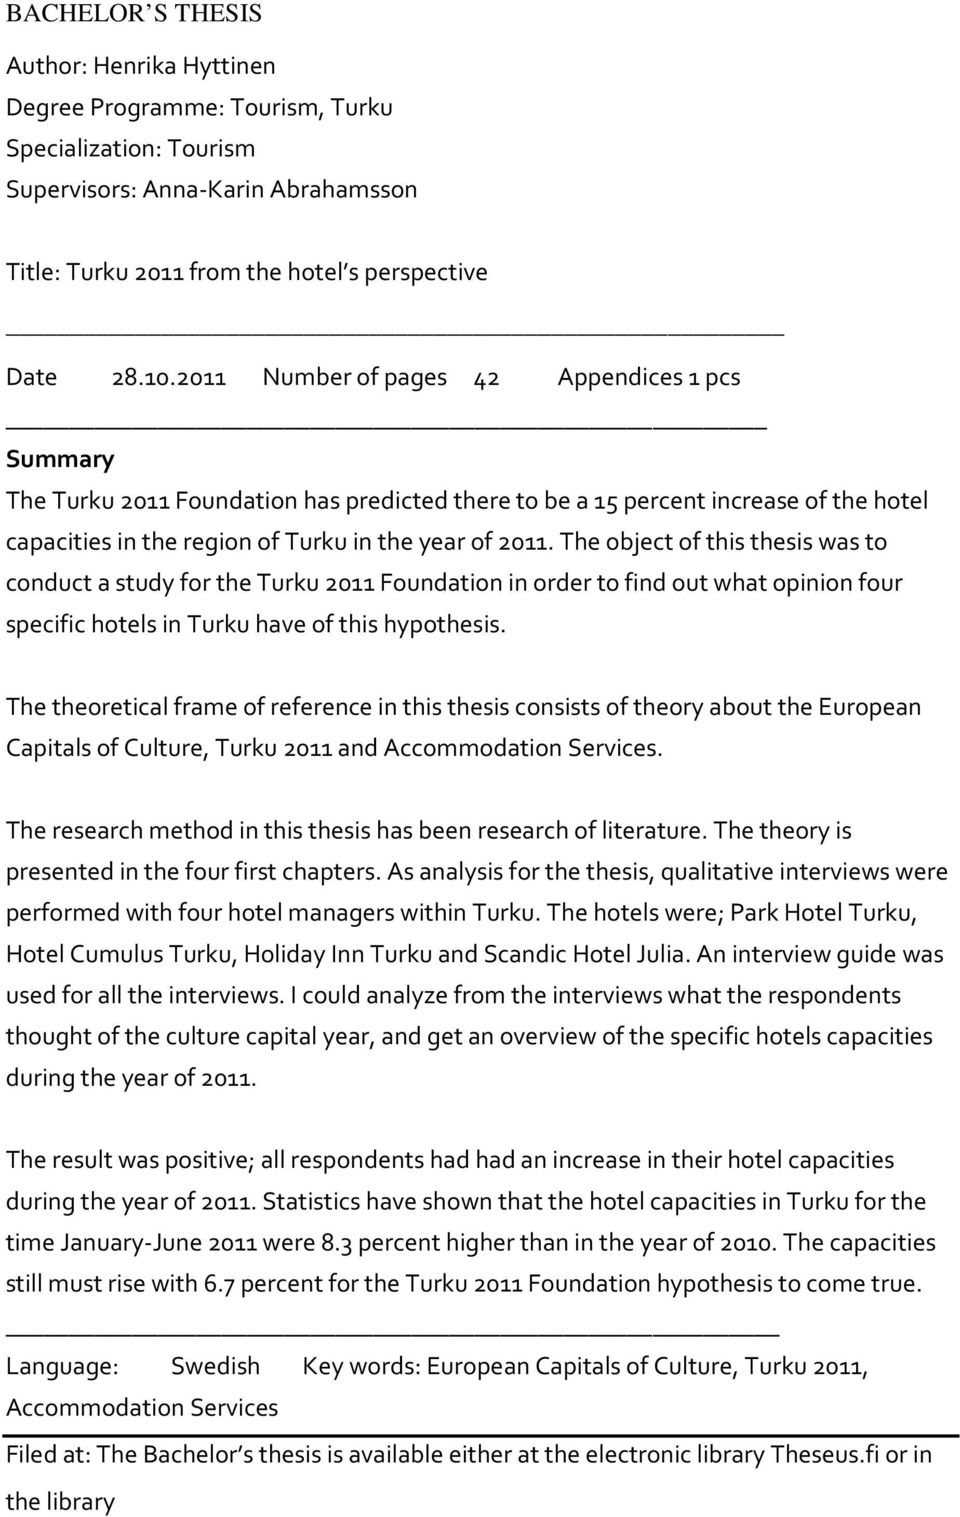 The object of this thesis was to conduct a study for the Turku 2011 Foundation in order to find out what opinion four specific hotels in Turku have of this hypothesis.